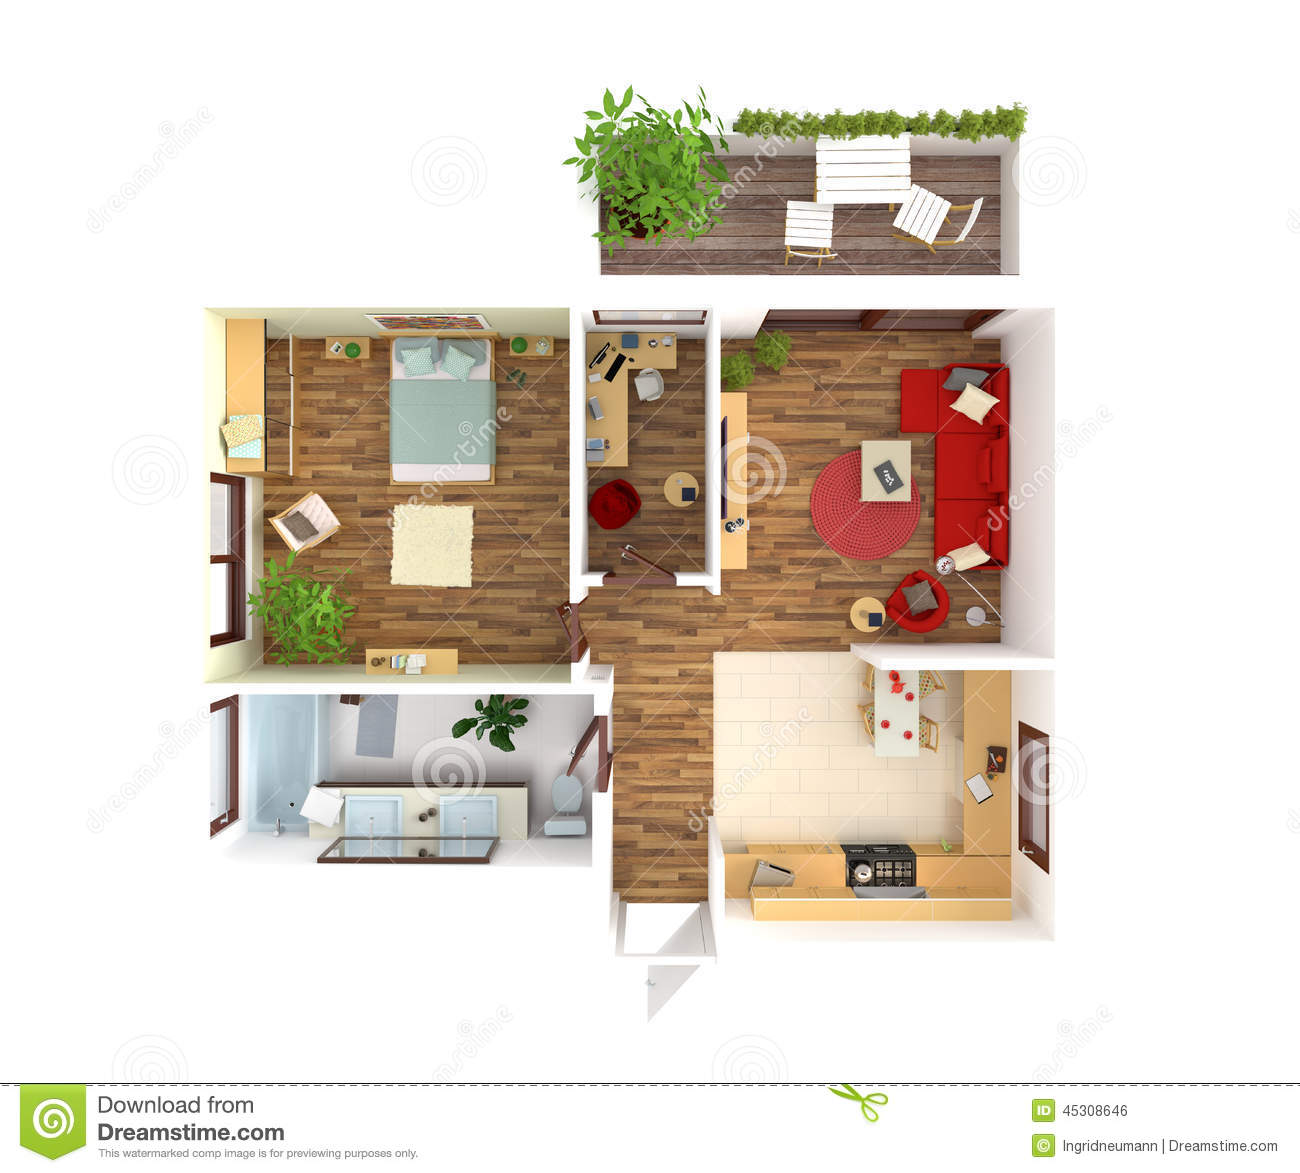 House plan top view interior design stock illustration for House interior design layout